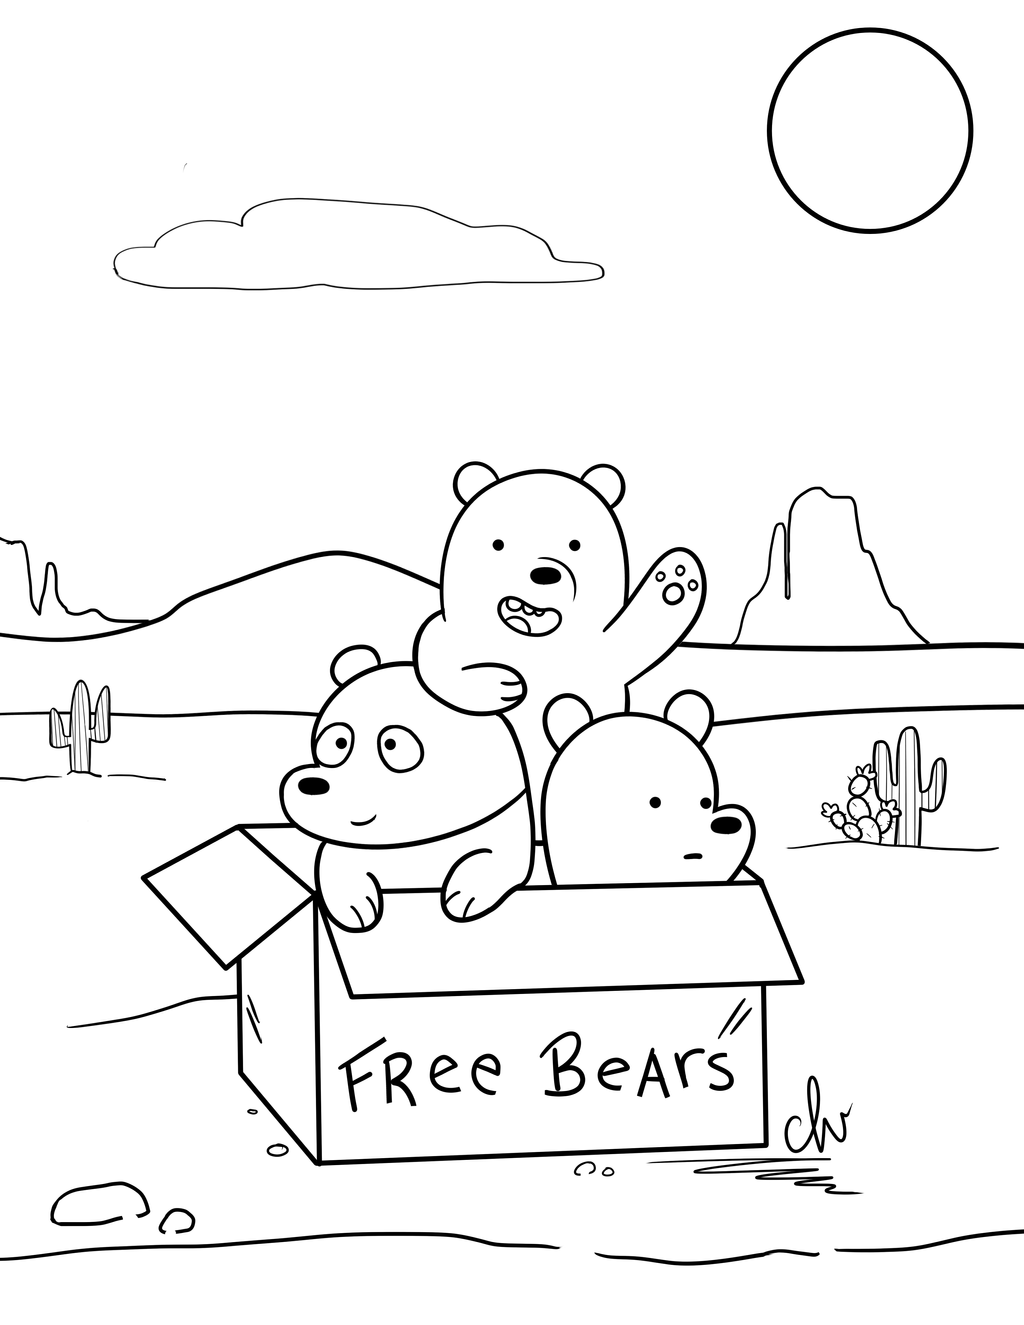 We Three Bears Coloring Pages